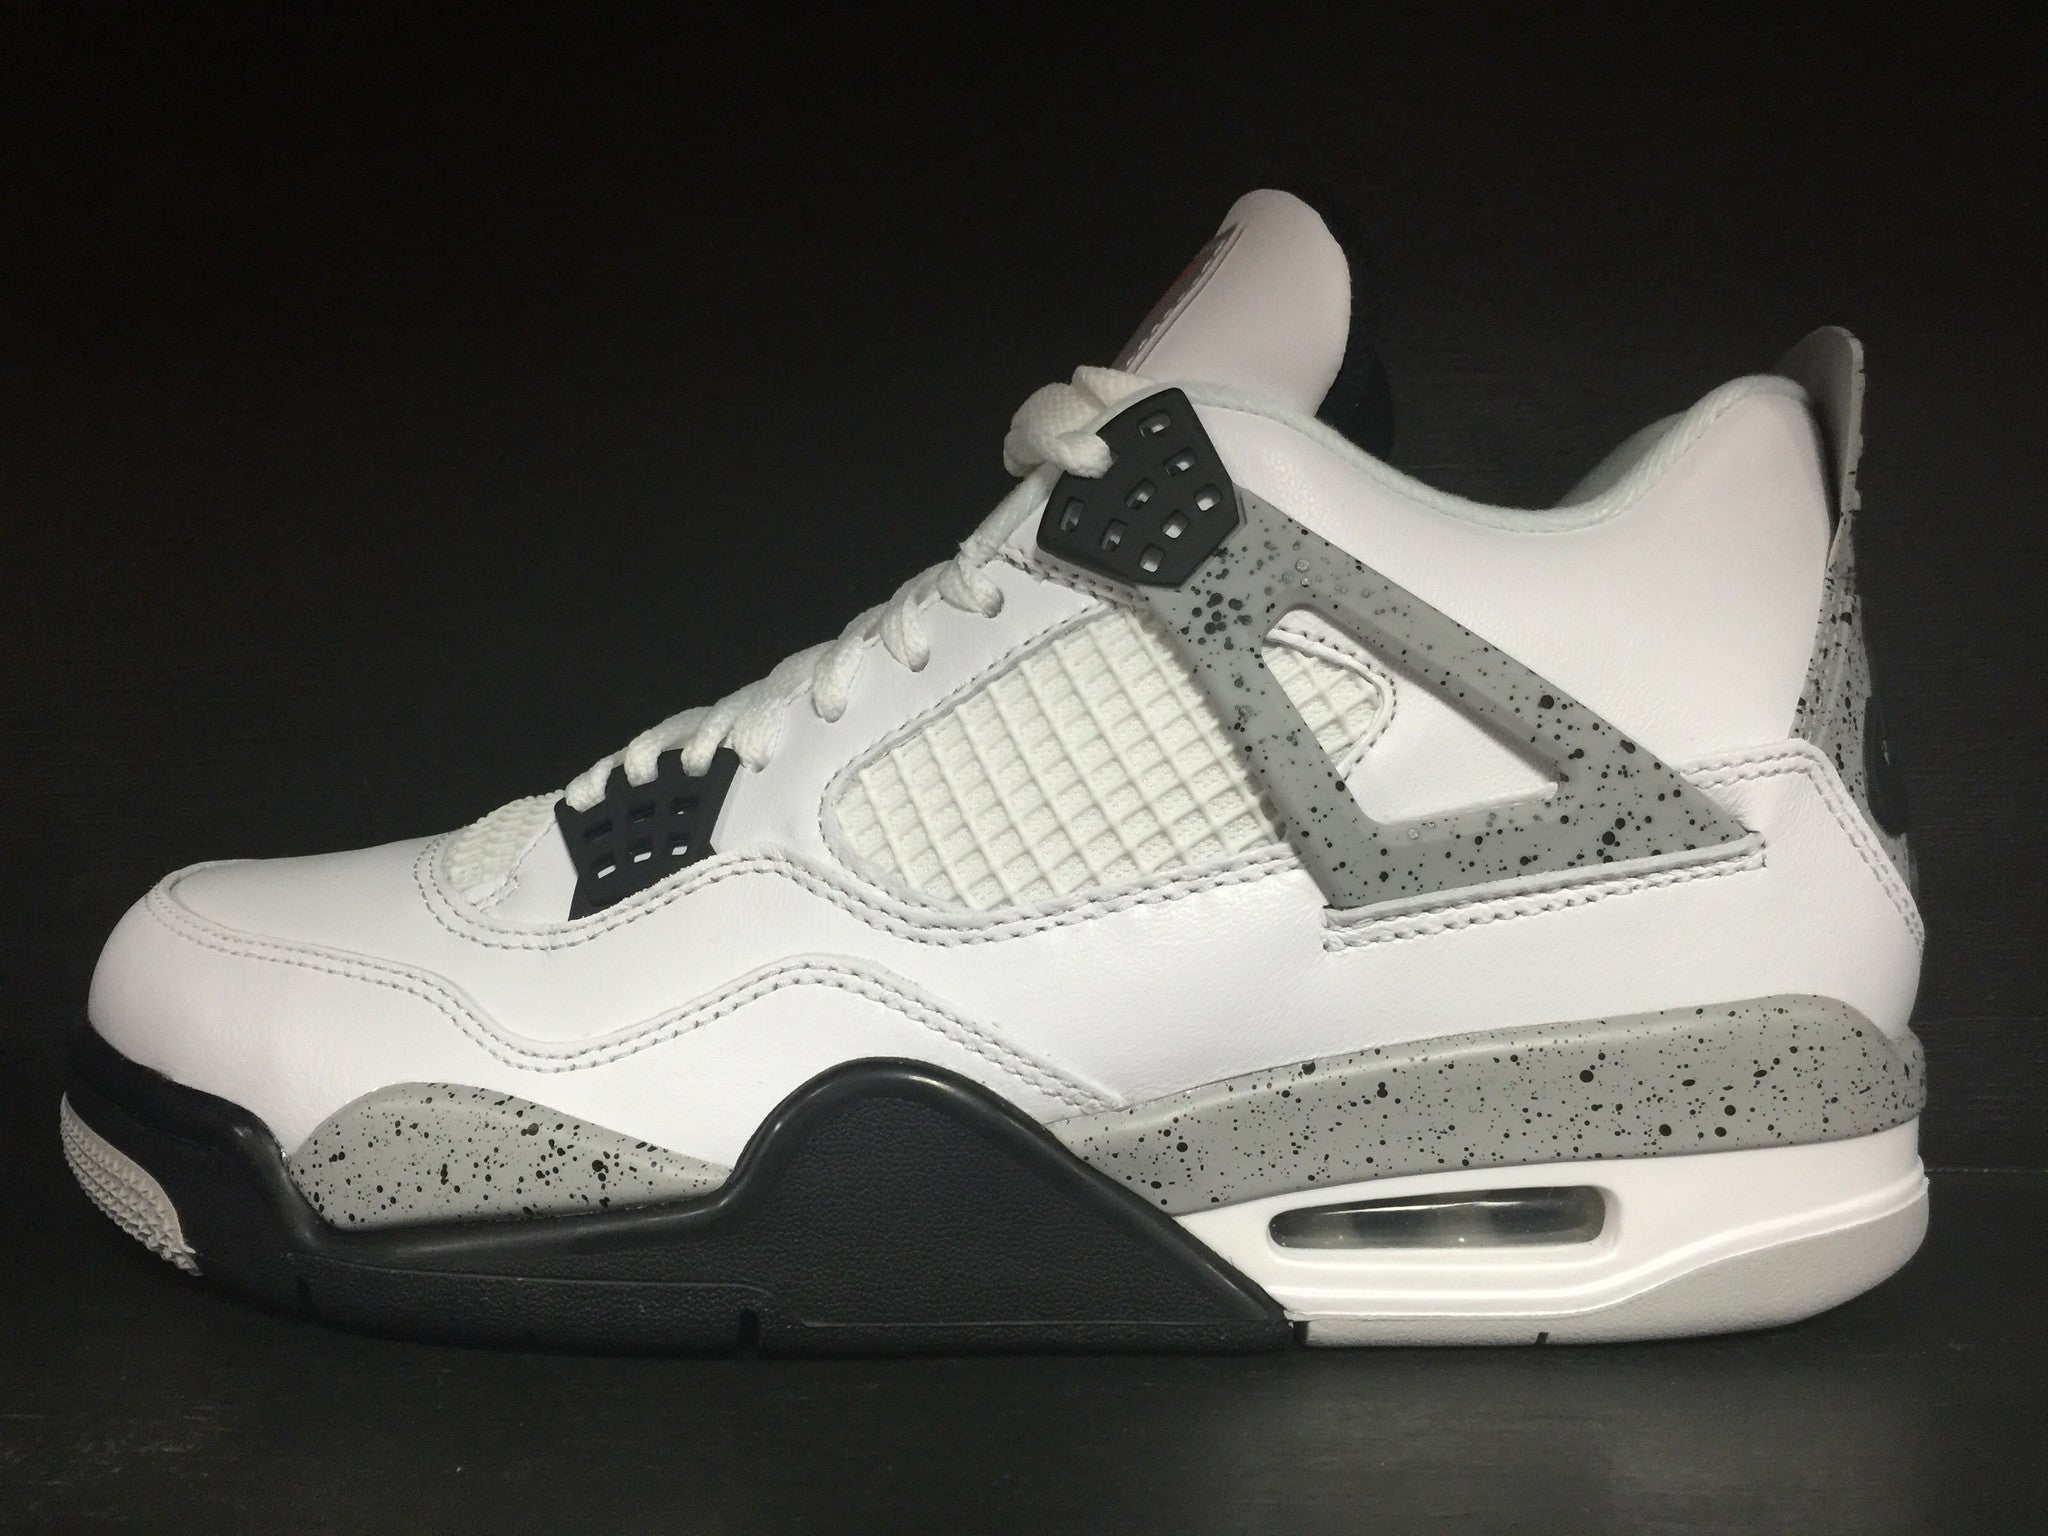 Air Jordan 4 Retro OG 'White Cement'